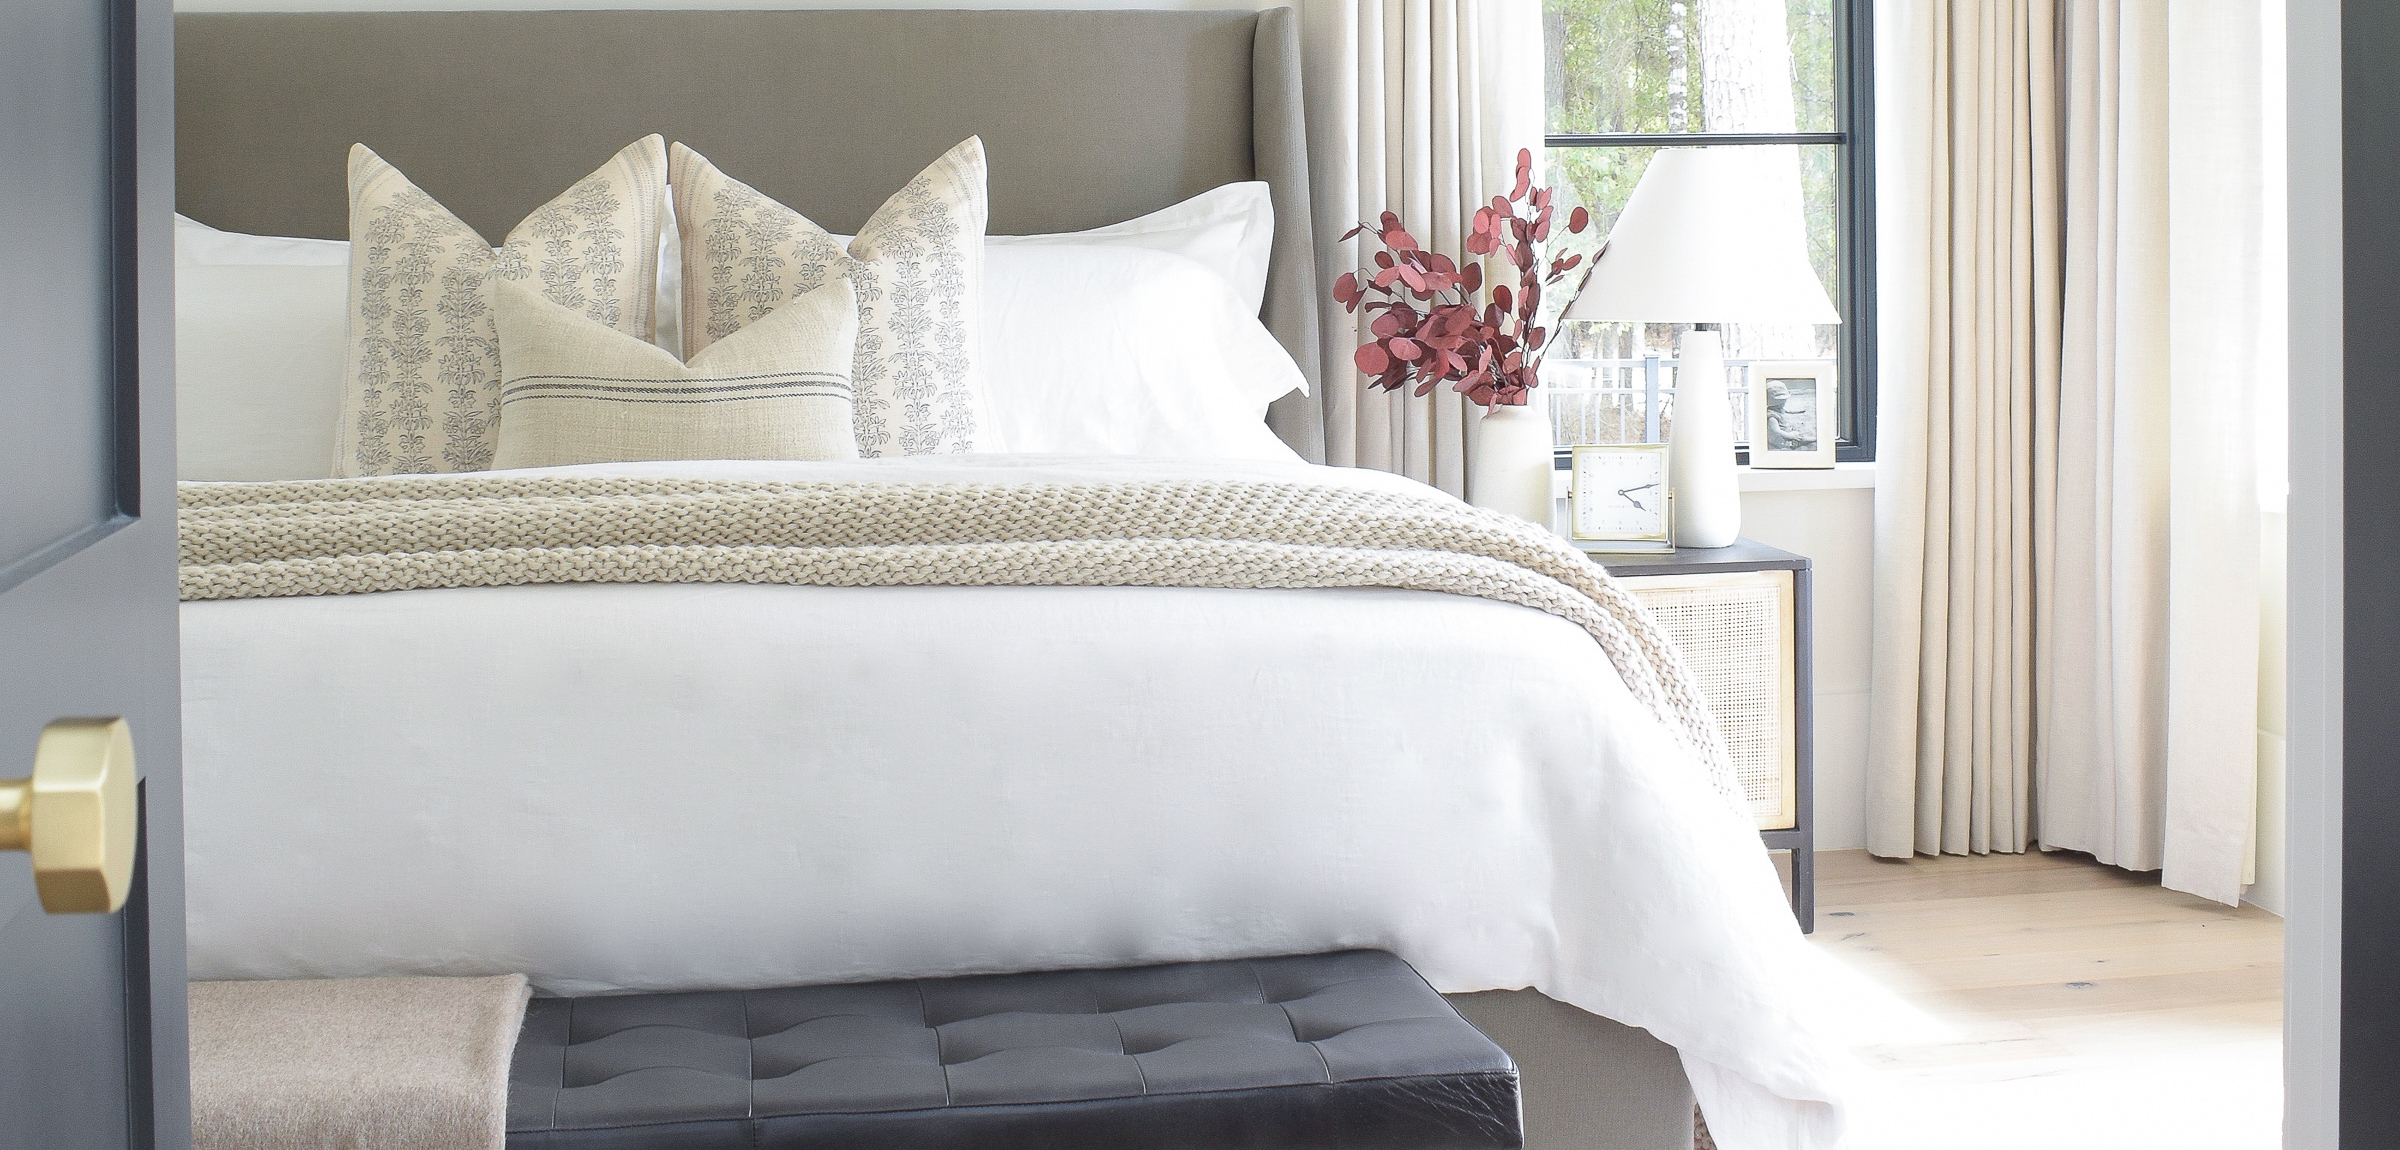 zdesignathome-primary-bedroom-sw-snowbound-elegant-transitional-master-bedroom-white-bedding-black-leather-tufted-bench-how-to-decorate-1